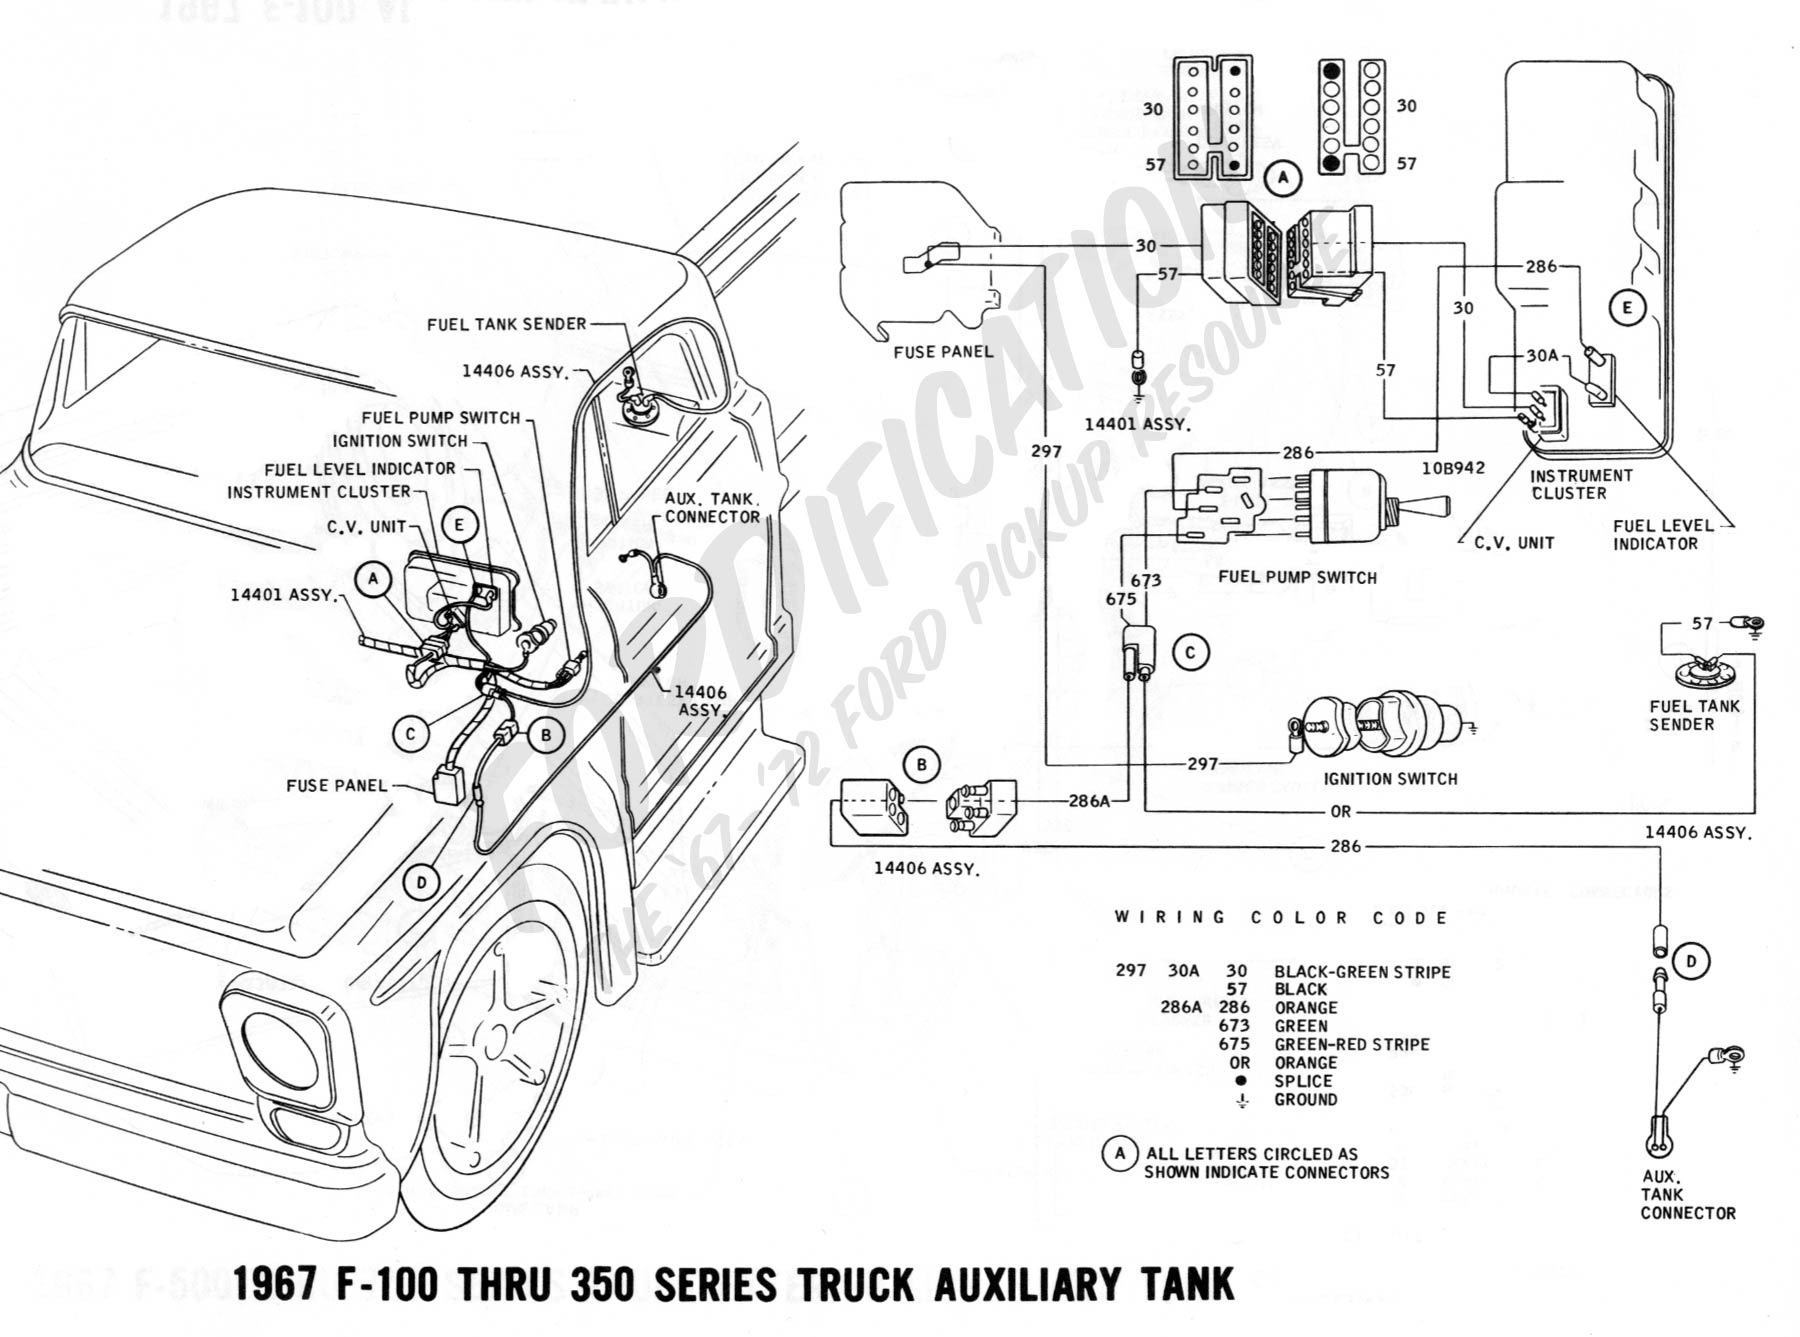 Ford Truck Technical Drawings And Schematics Section H Wiring 1967 Chevy Chevelle Diagram F 100 Thru 350 Auxiliary Fuel Tank